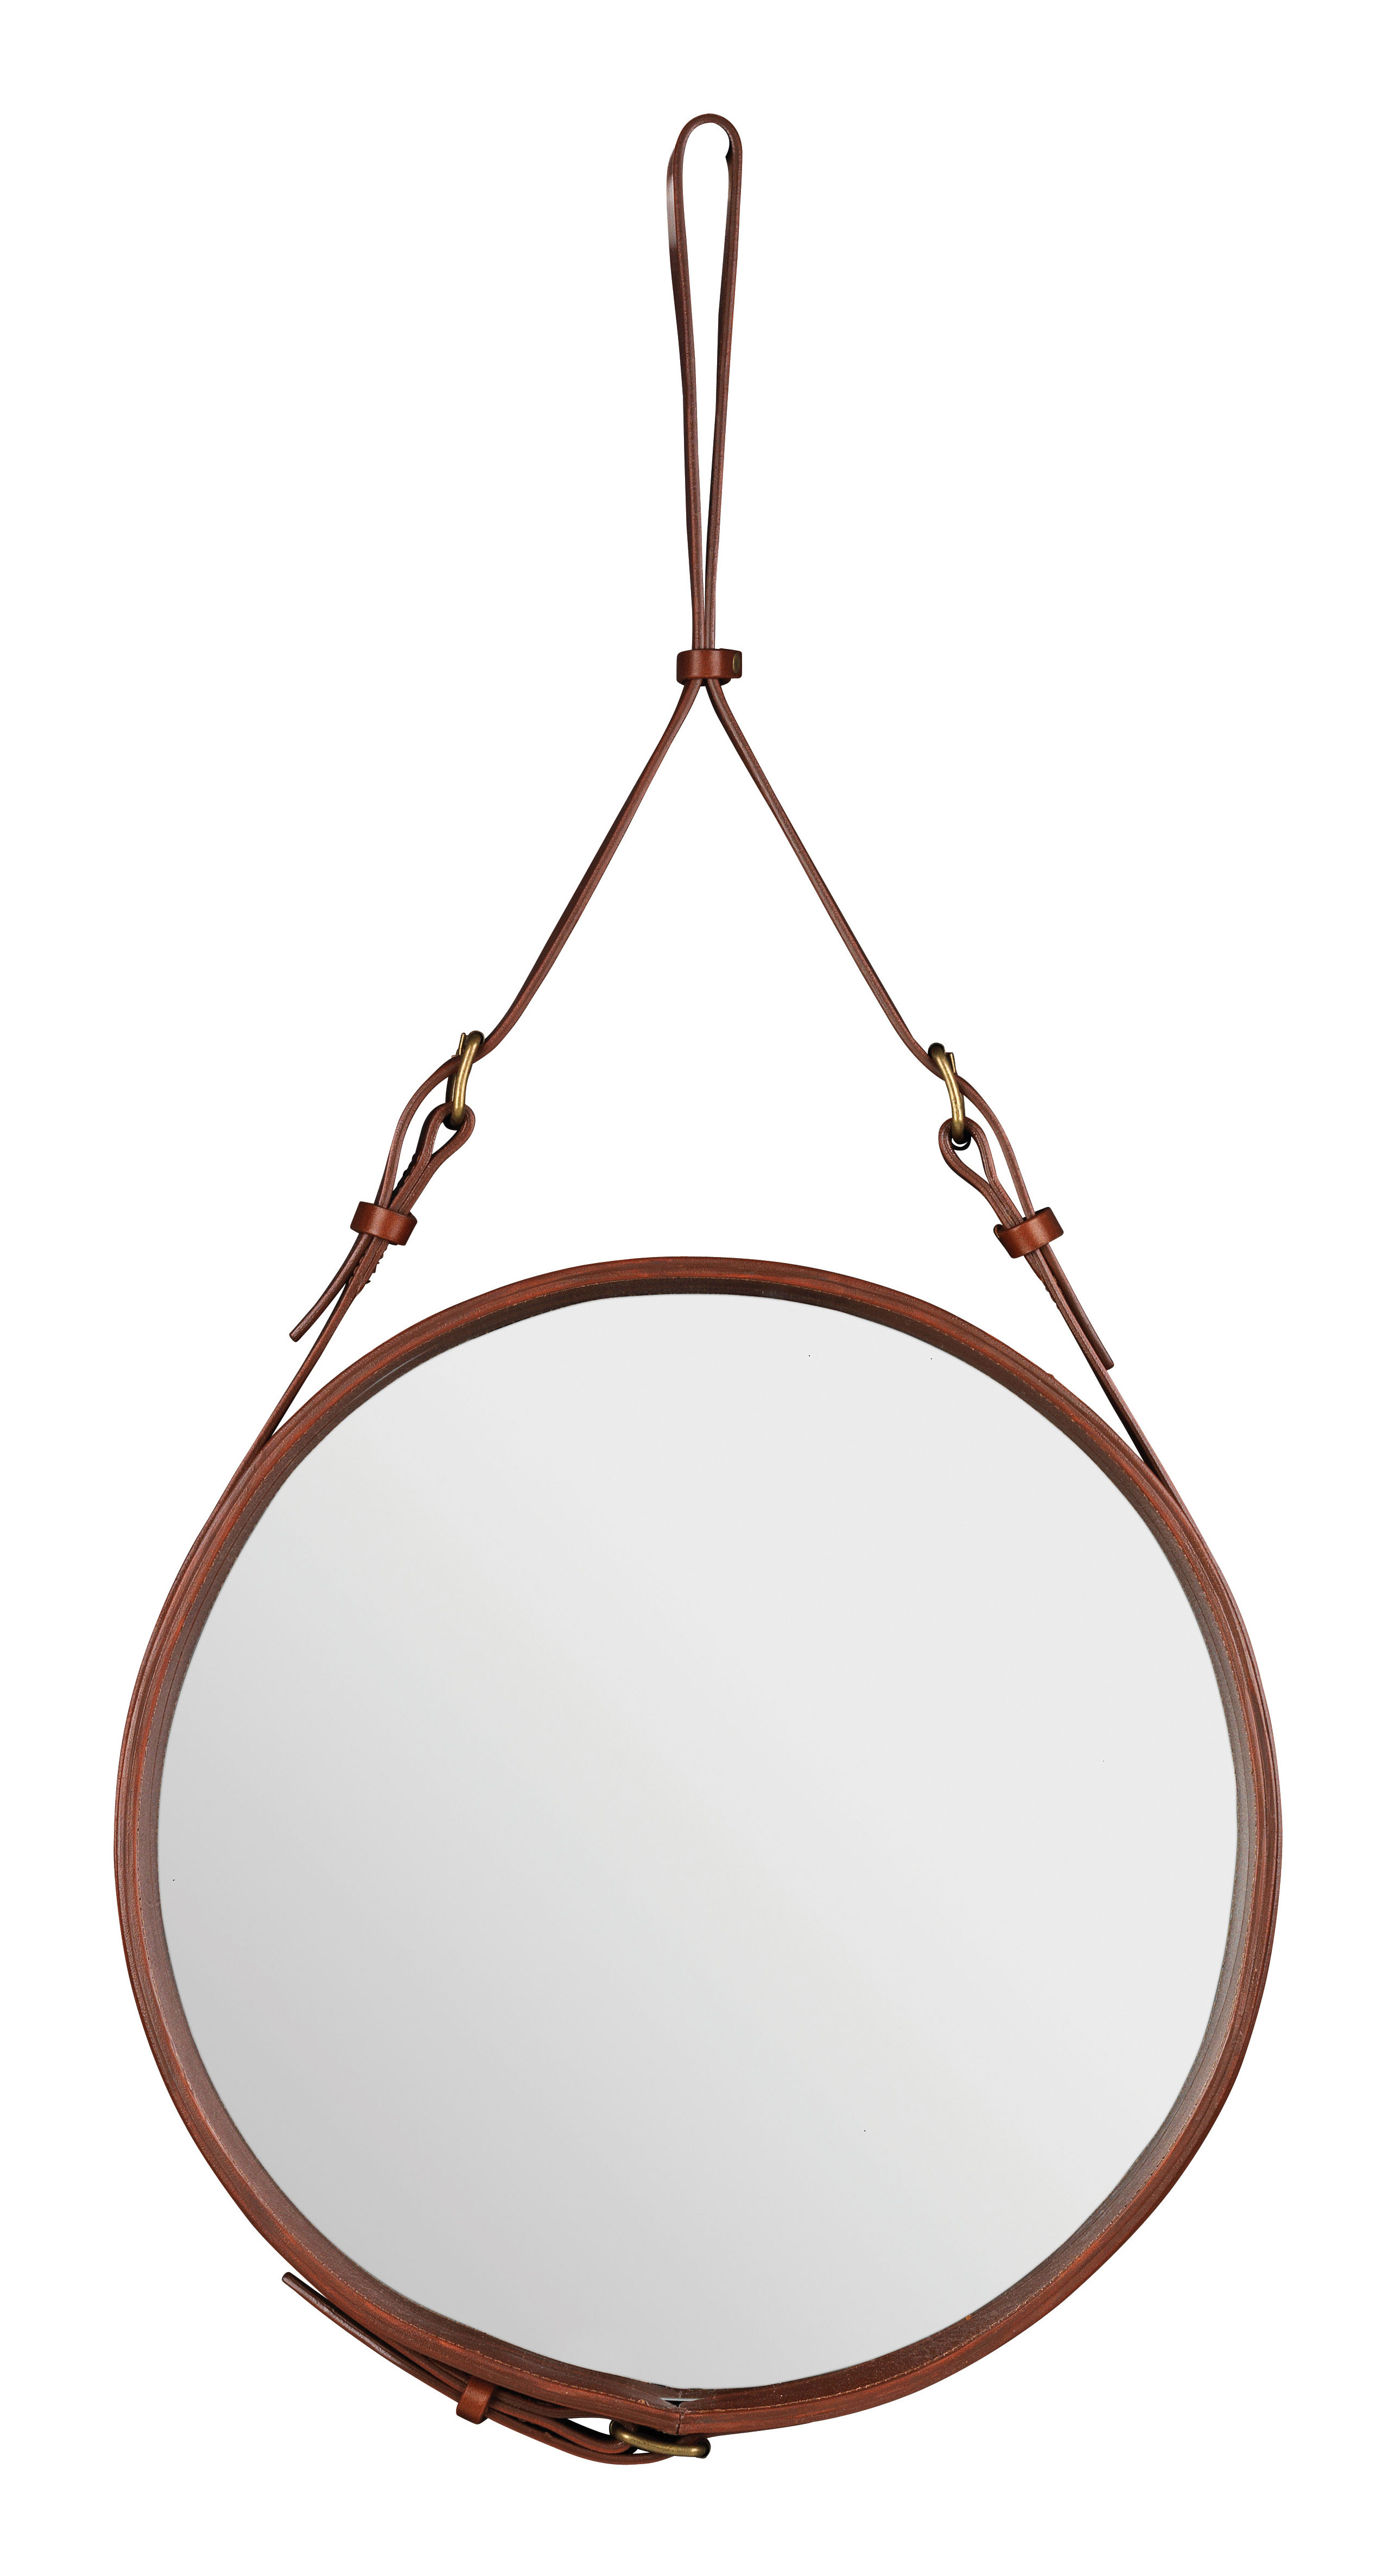 Miroir mural adnet 58 cm r dition 50 39 marron gubi for Miroir 50 x 70 cm